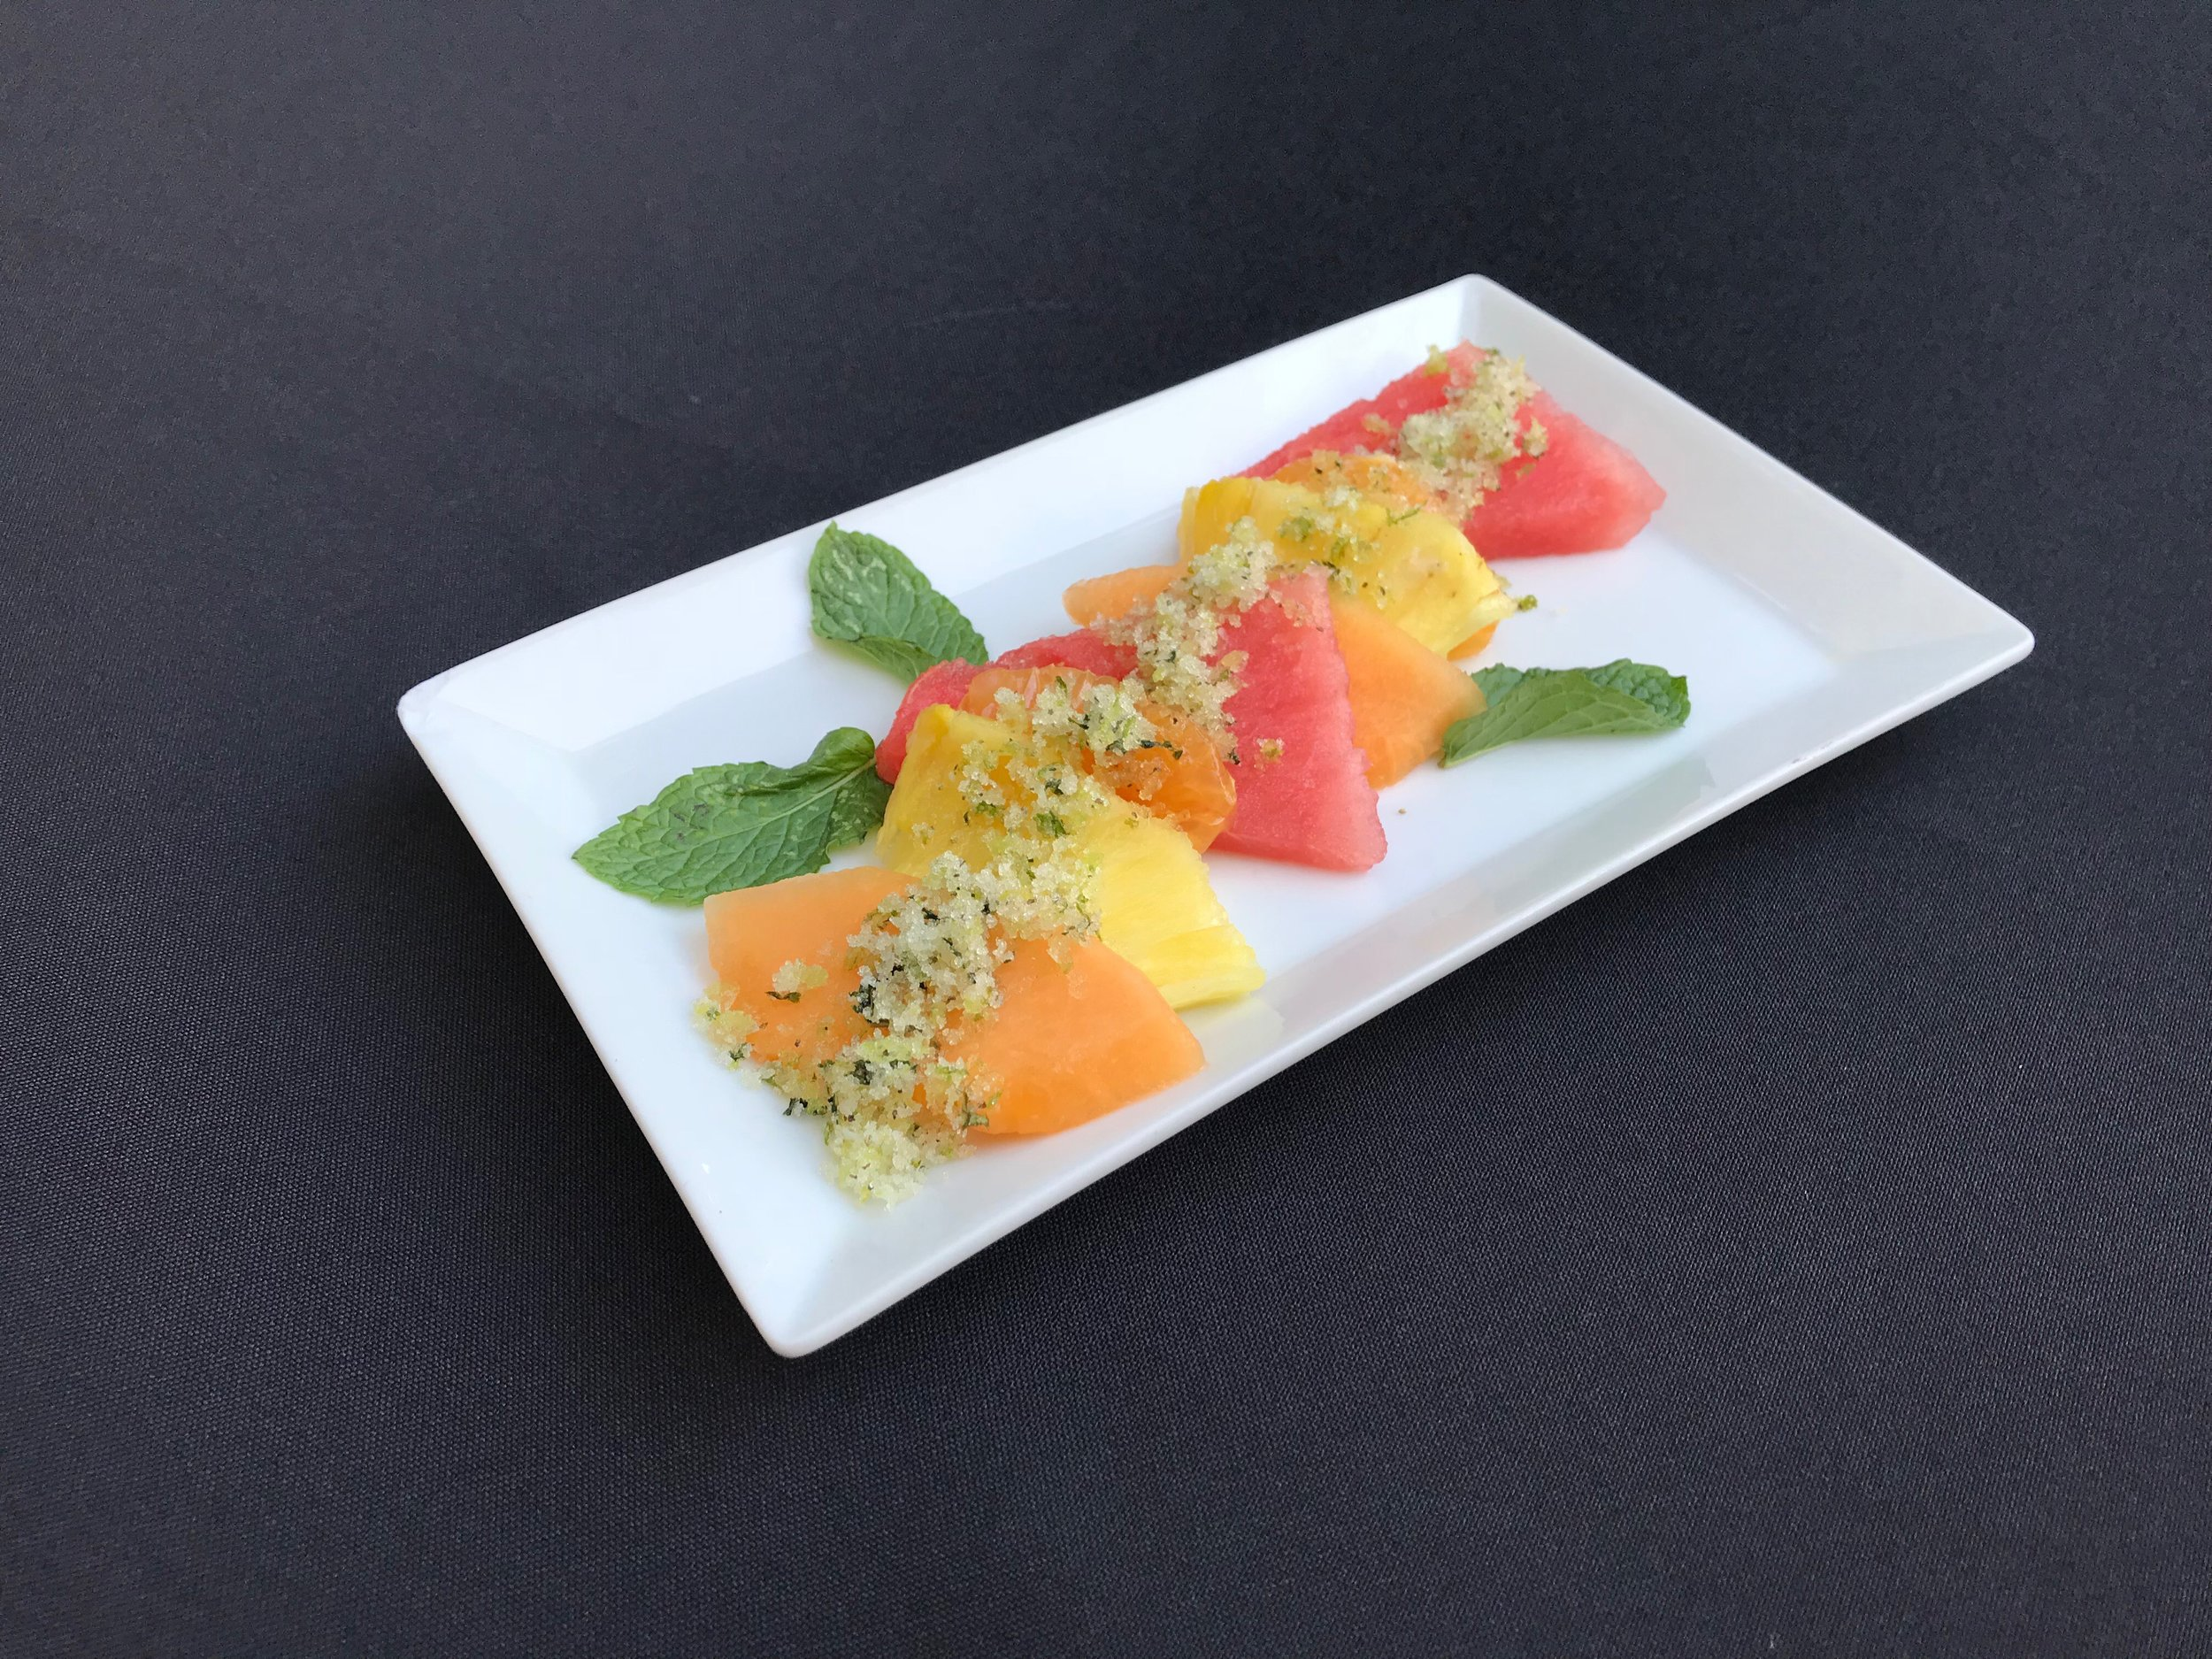 Melon Salad  - Sliced cantaloupe, watermelon, pineapple, and tangerine segments dusted with citrus sugar and fresh mint